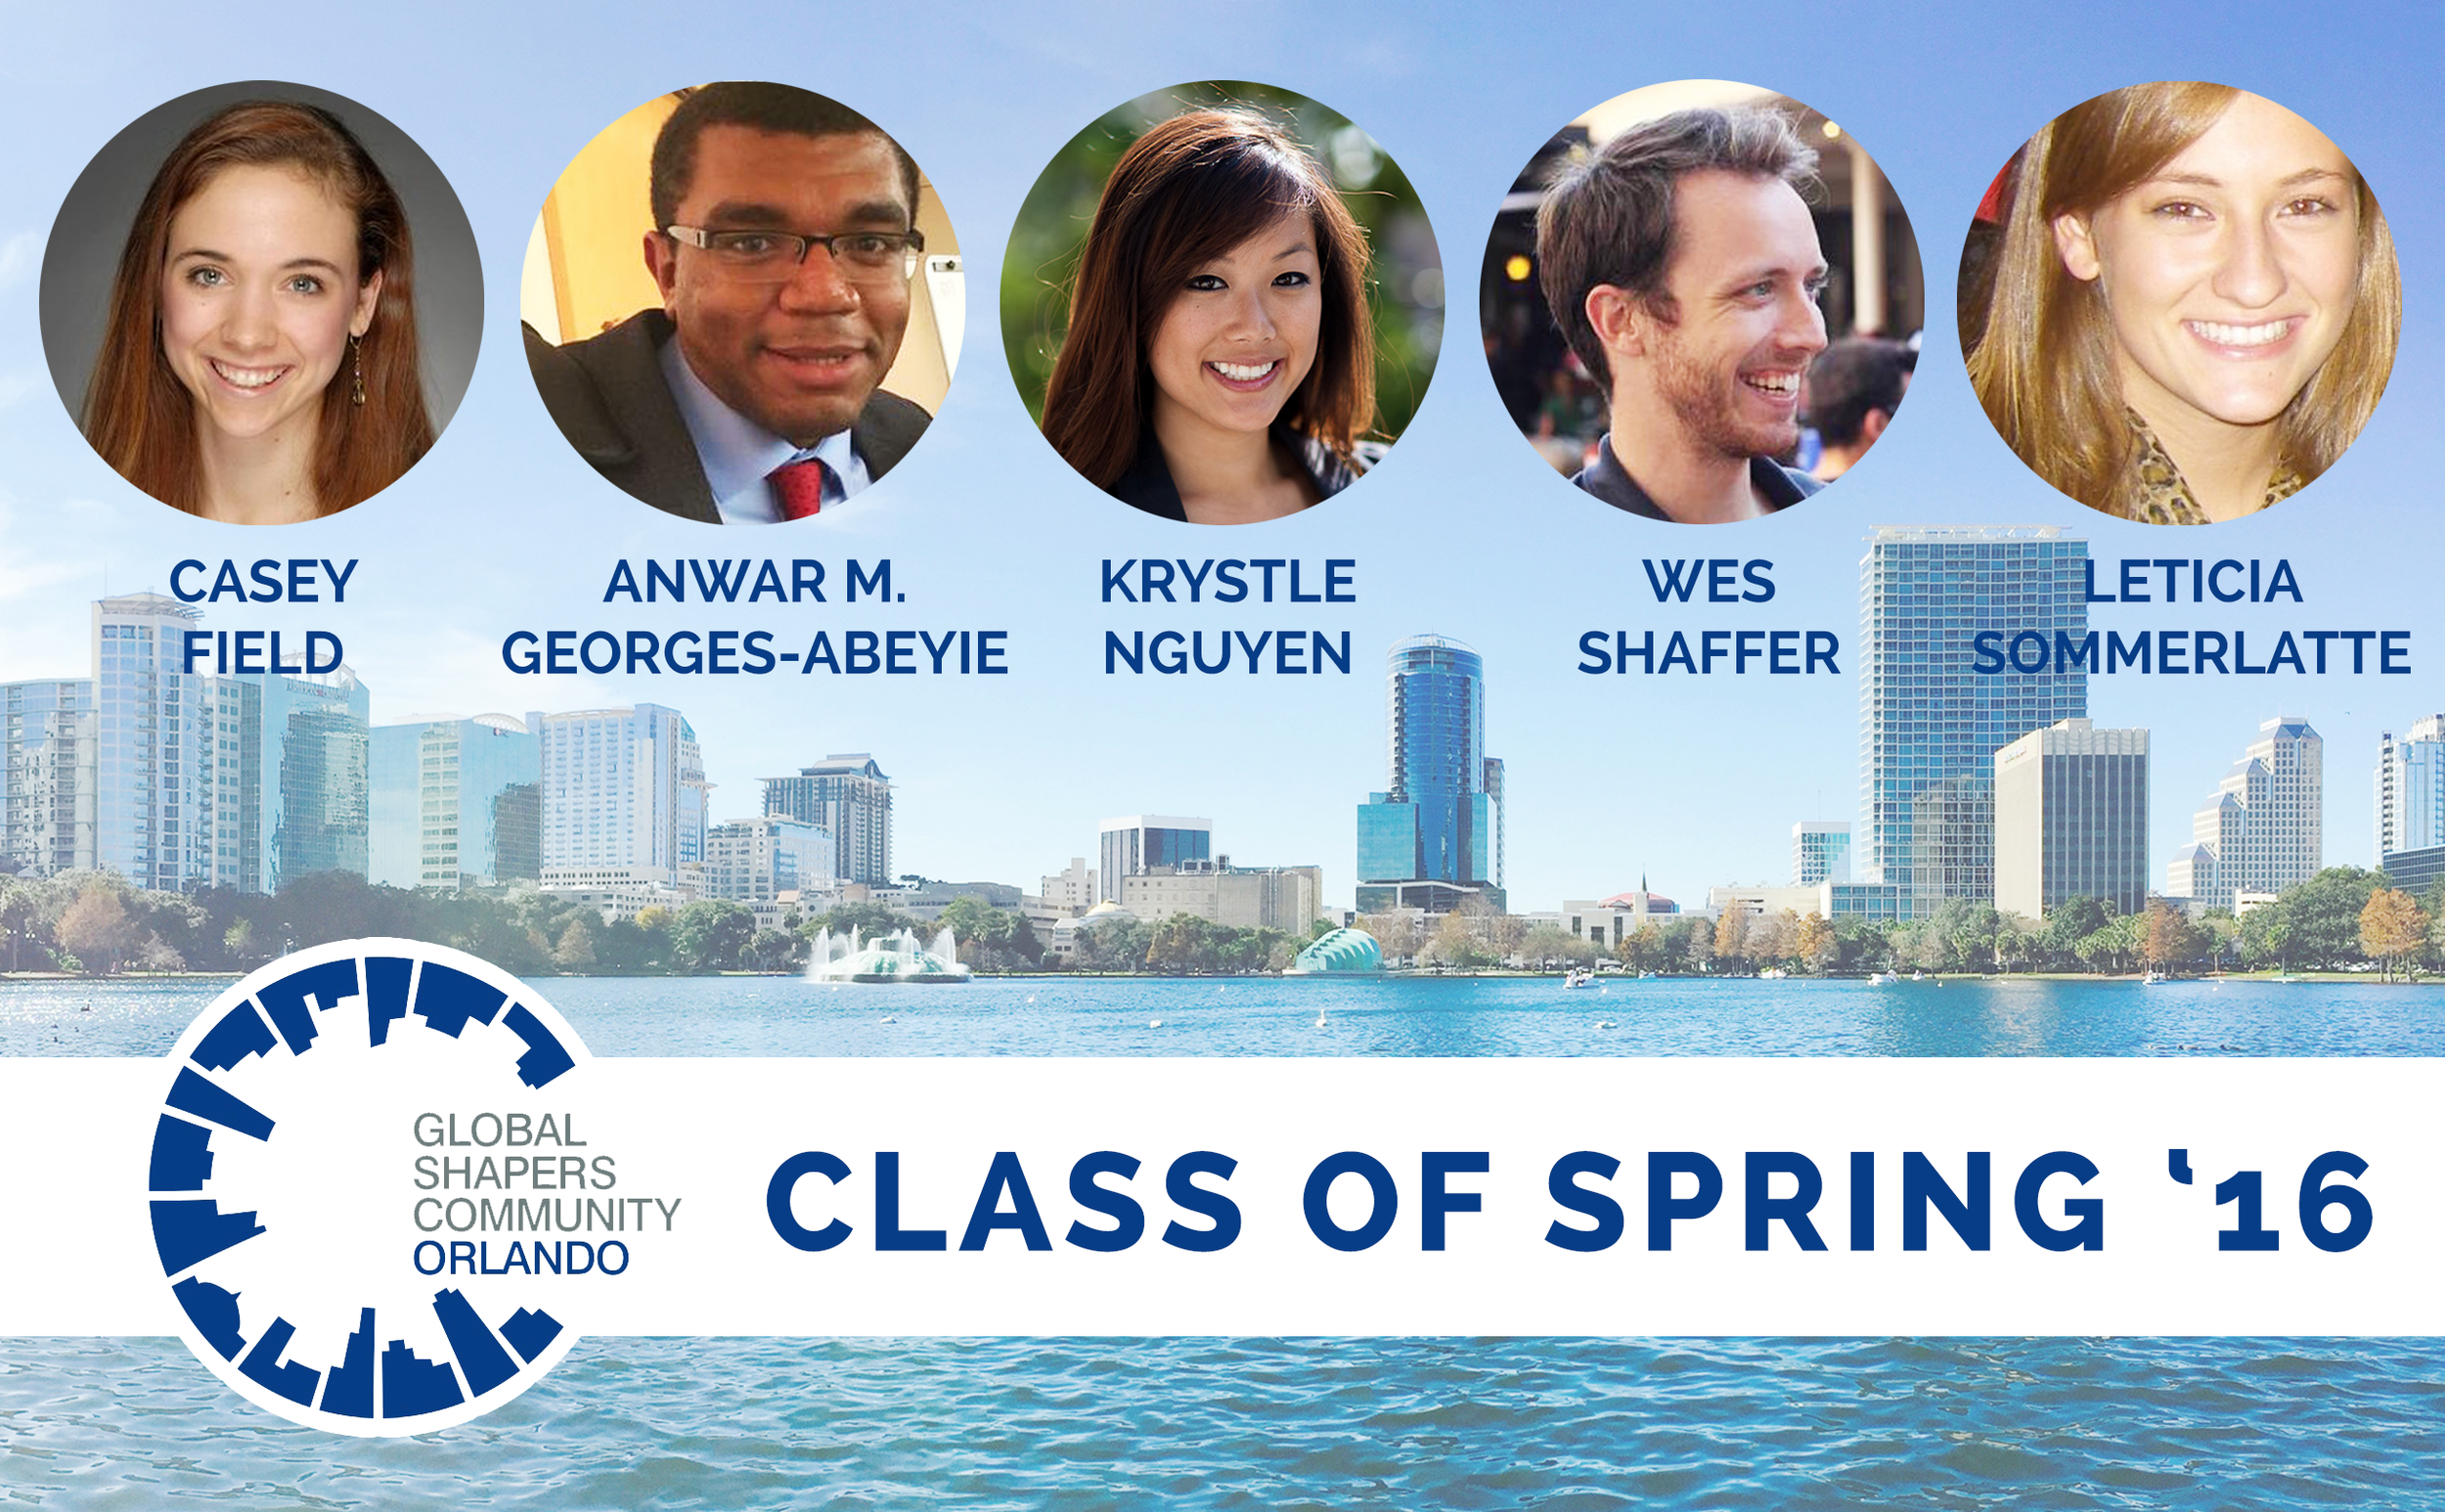 """The Orlando Hub is proud to welcome our newest members to the Global Shaper Community - an initiative of the World Economic Forum.  We welcome the class of Spring '16 - Casey Field, Anwar M. Georges-Abeyie, Krystle Nguyen, Wes Shaffer and Leticia Sommerlatte.  The incoming Shapers will also be hosting """"To Build a Home Hack-a-thon"""" this Thursday at 5:30 pm to 7:30 pm at the Downtown Orlando Public Library. The purpose of the project is to engage the community on building an innovative idea towards eradicating homelessness in our city.   https://www.facebook.com/events/1765319587070739/"""